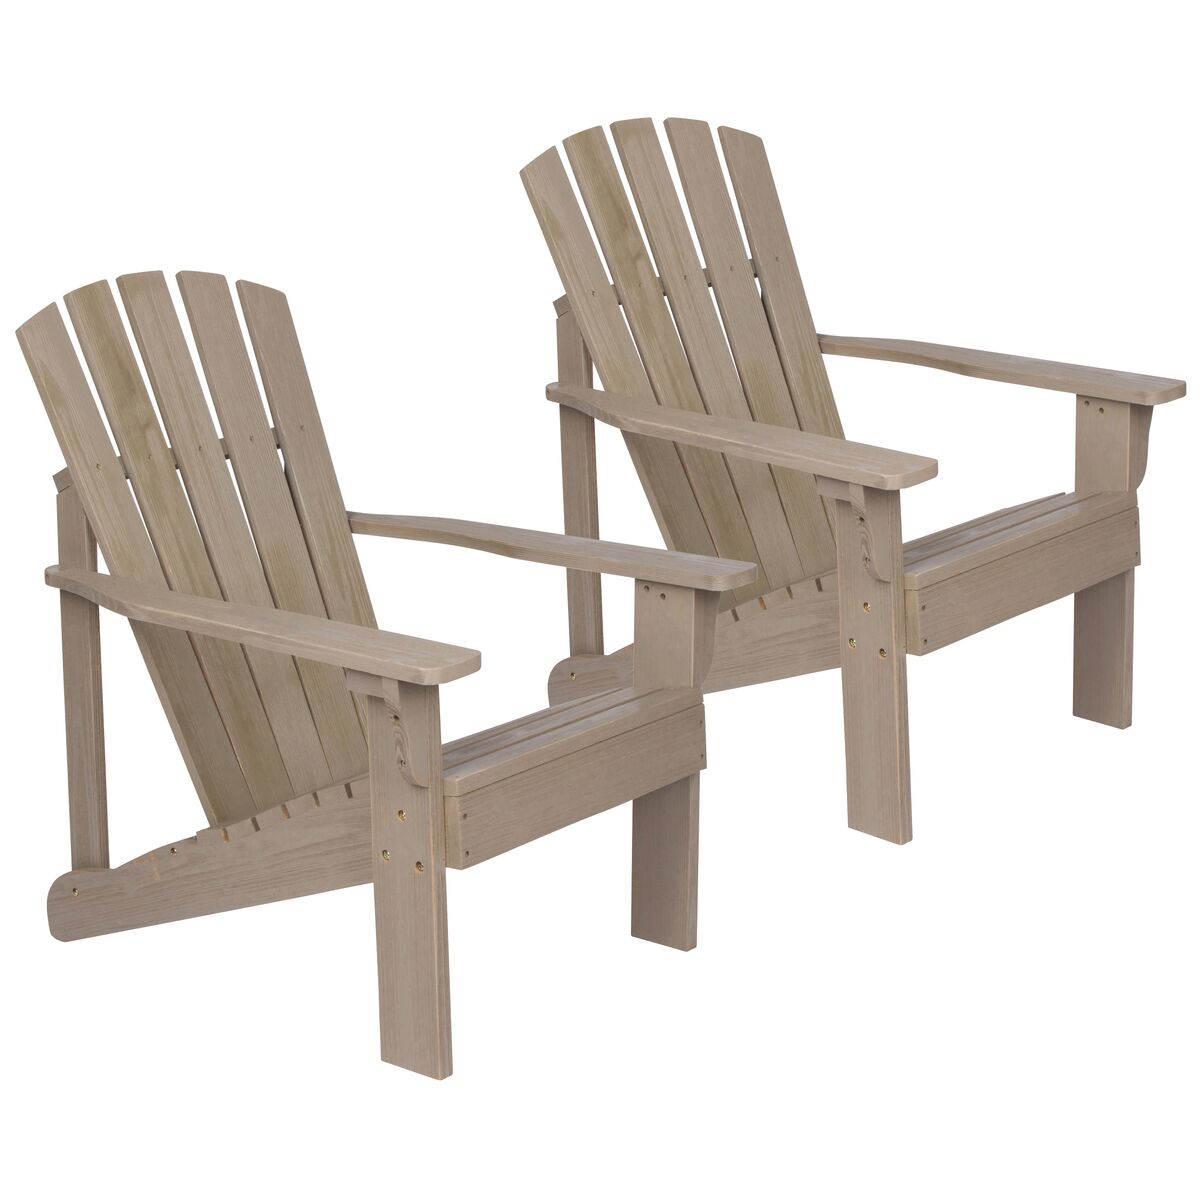 Astounding 2 Shine Vineyard Taupe Gray Wood Adirondack Chairs Gamerscity Chair Design For Home Gamerscityorg